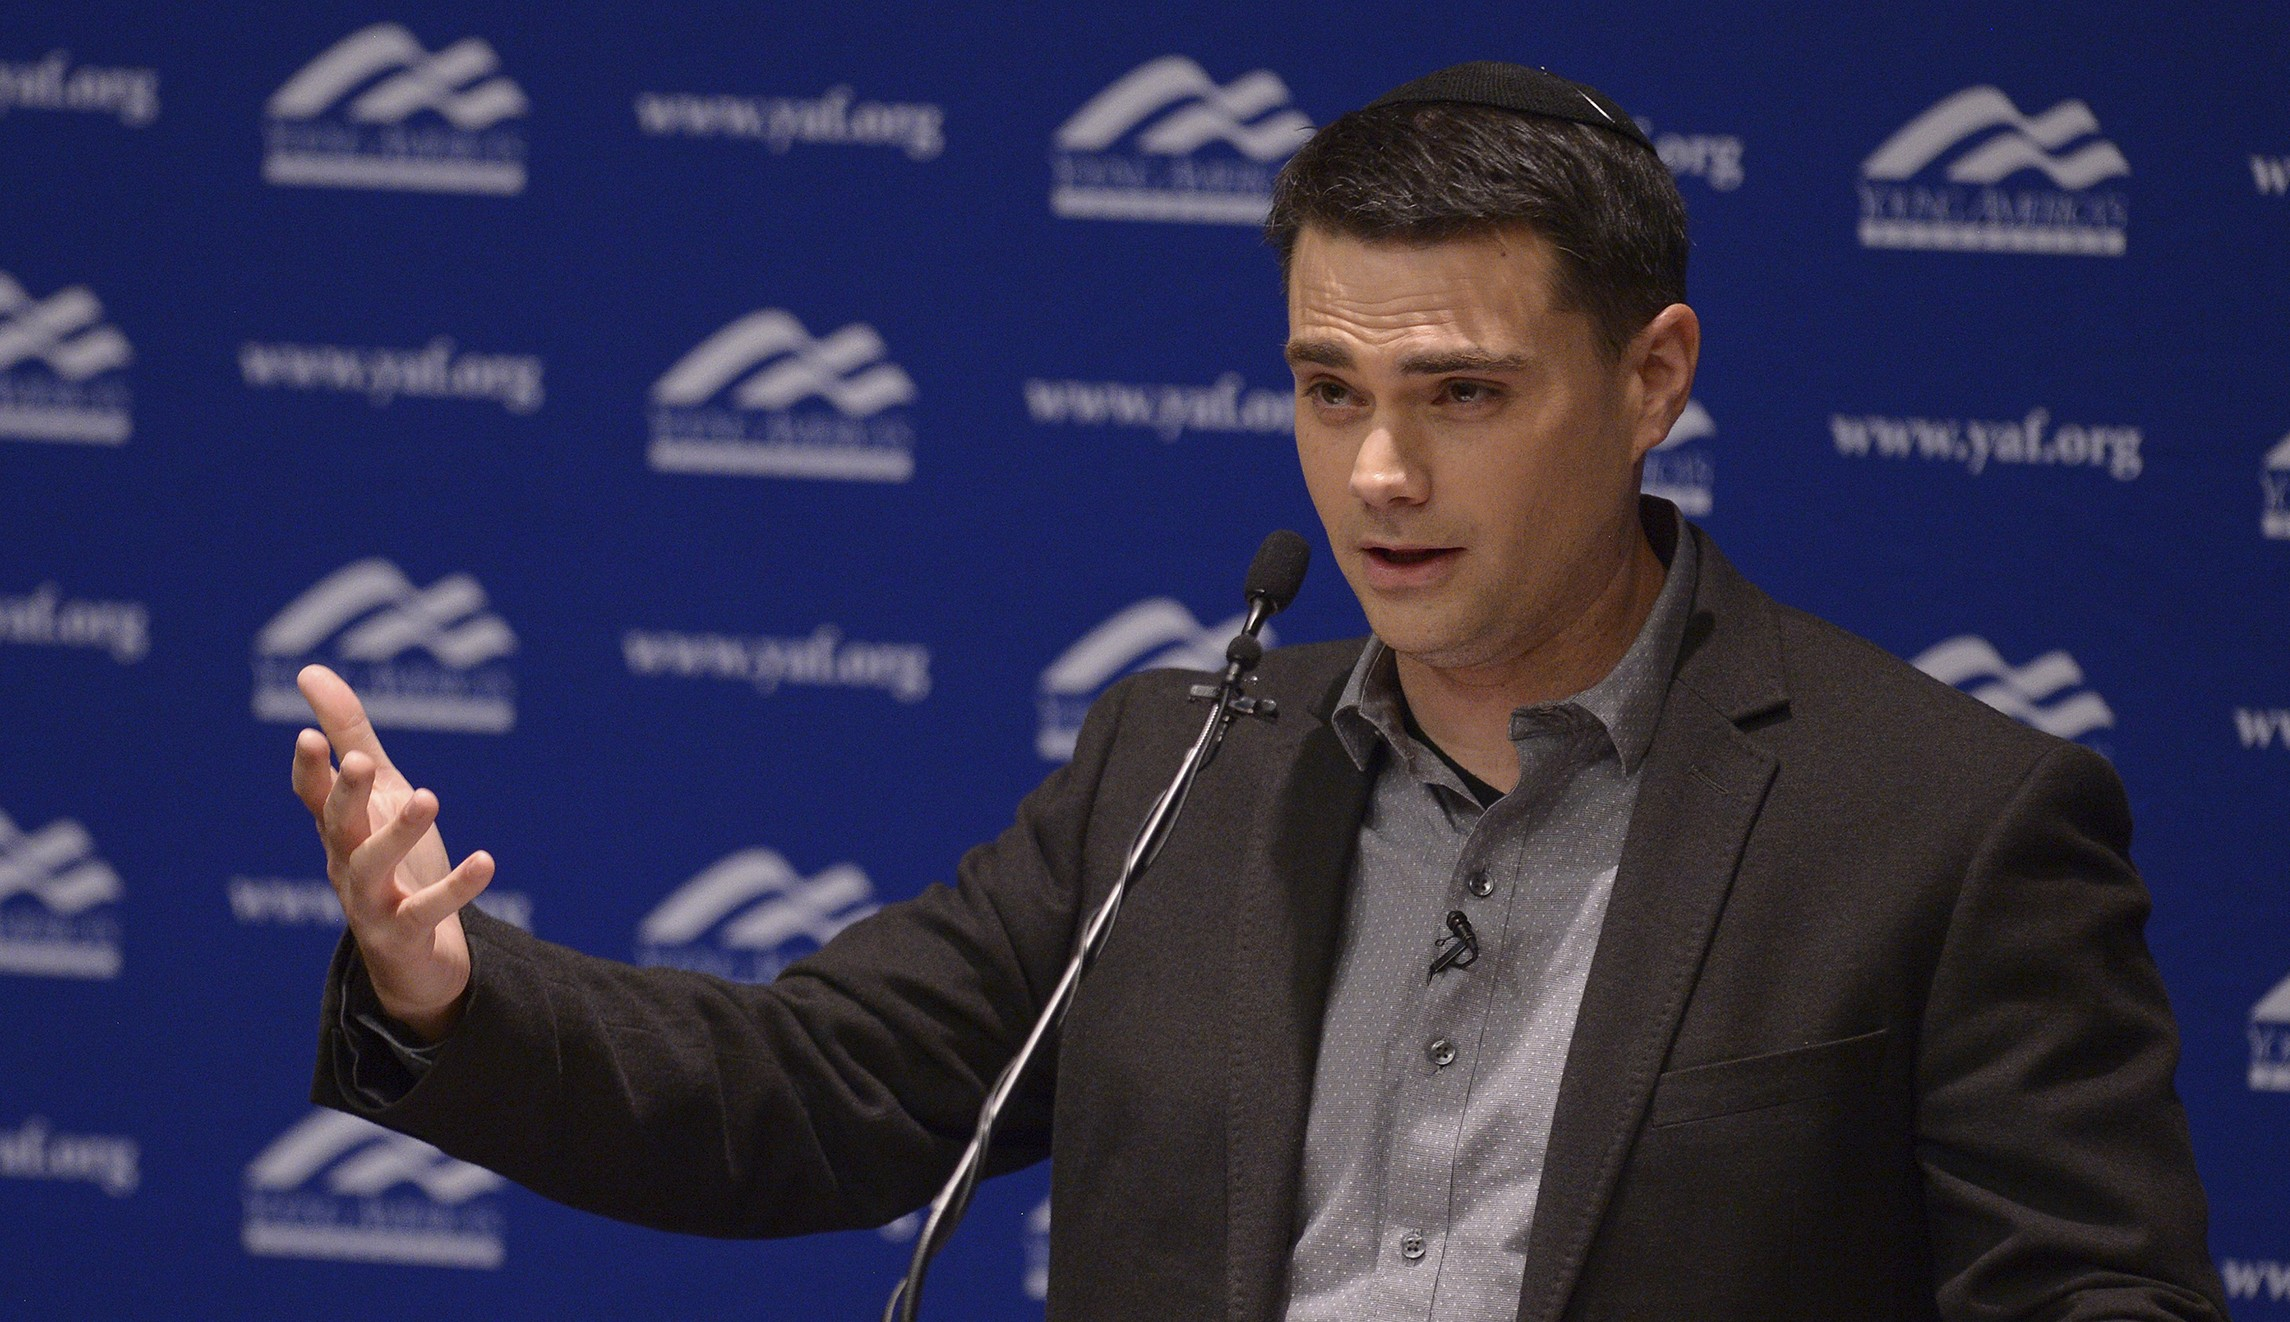 ben shapiro - Ben Shapiro - Conversation - Quote